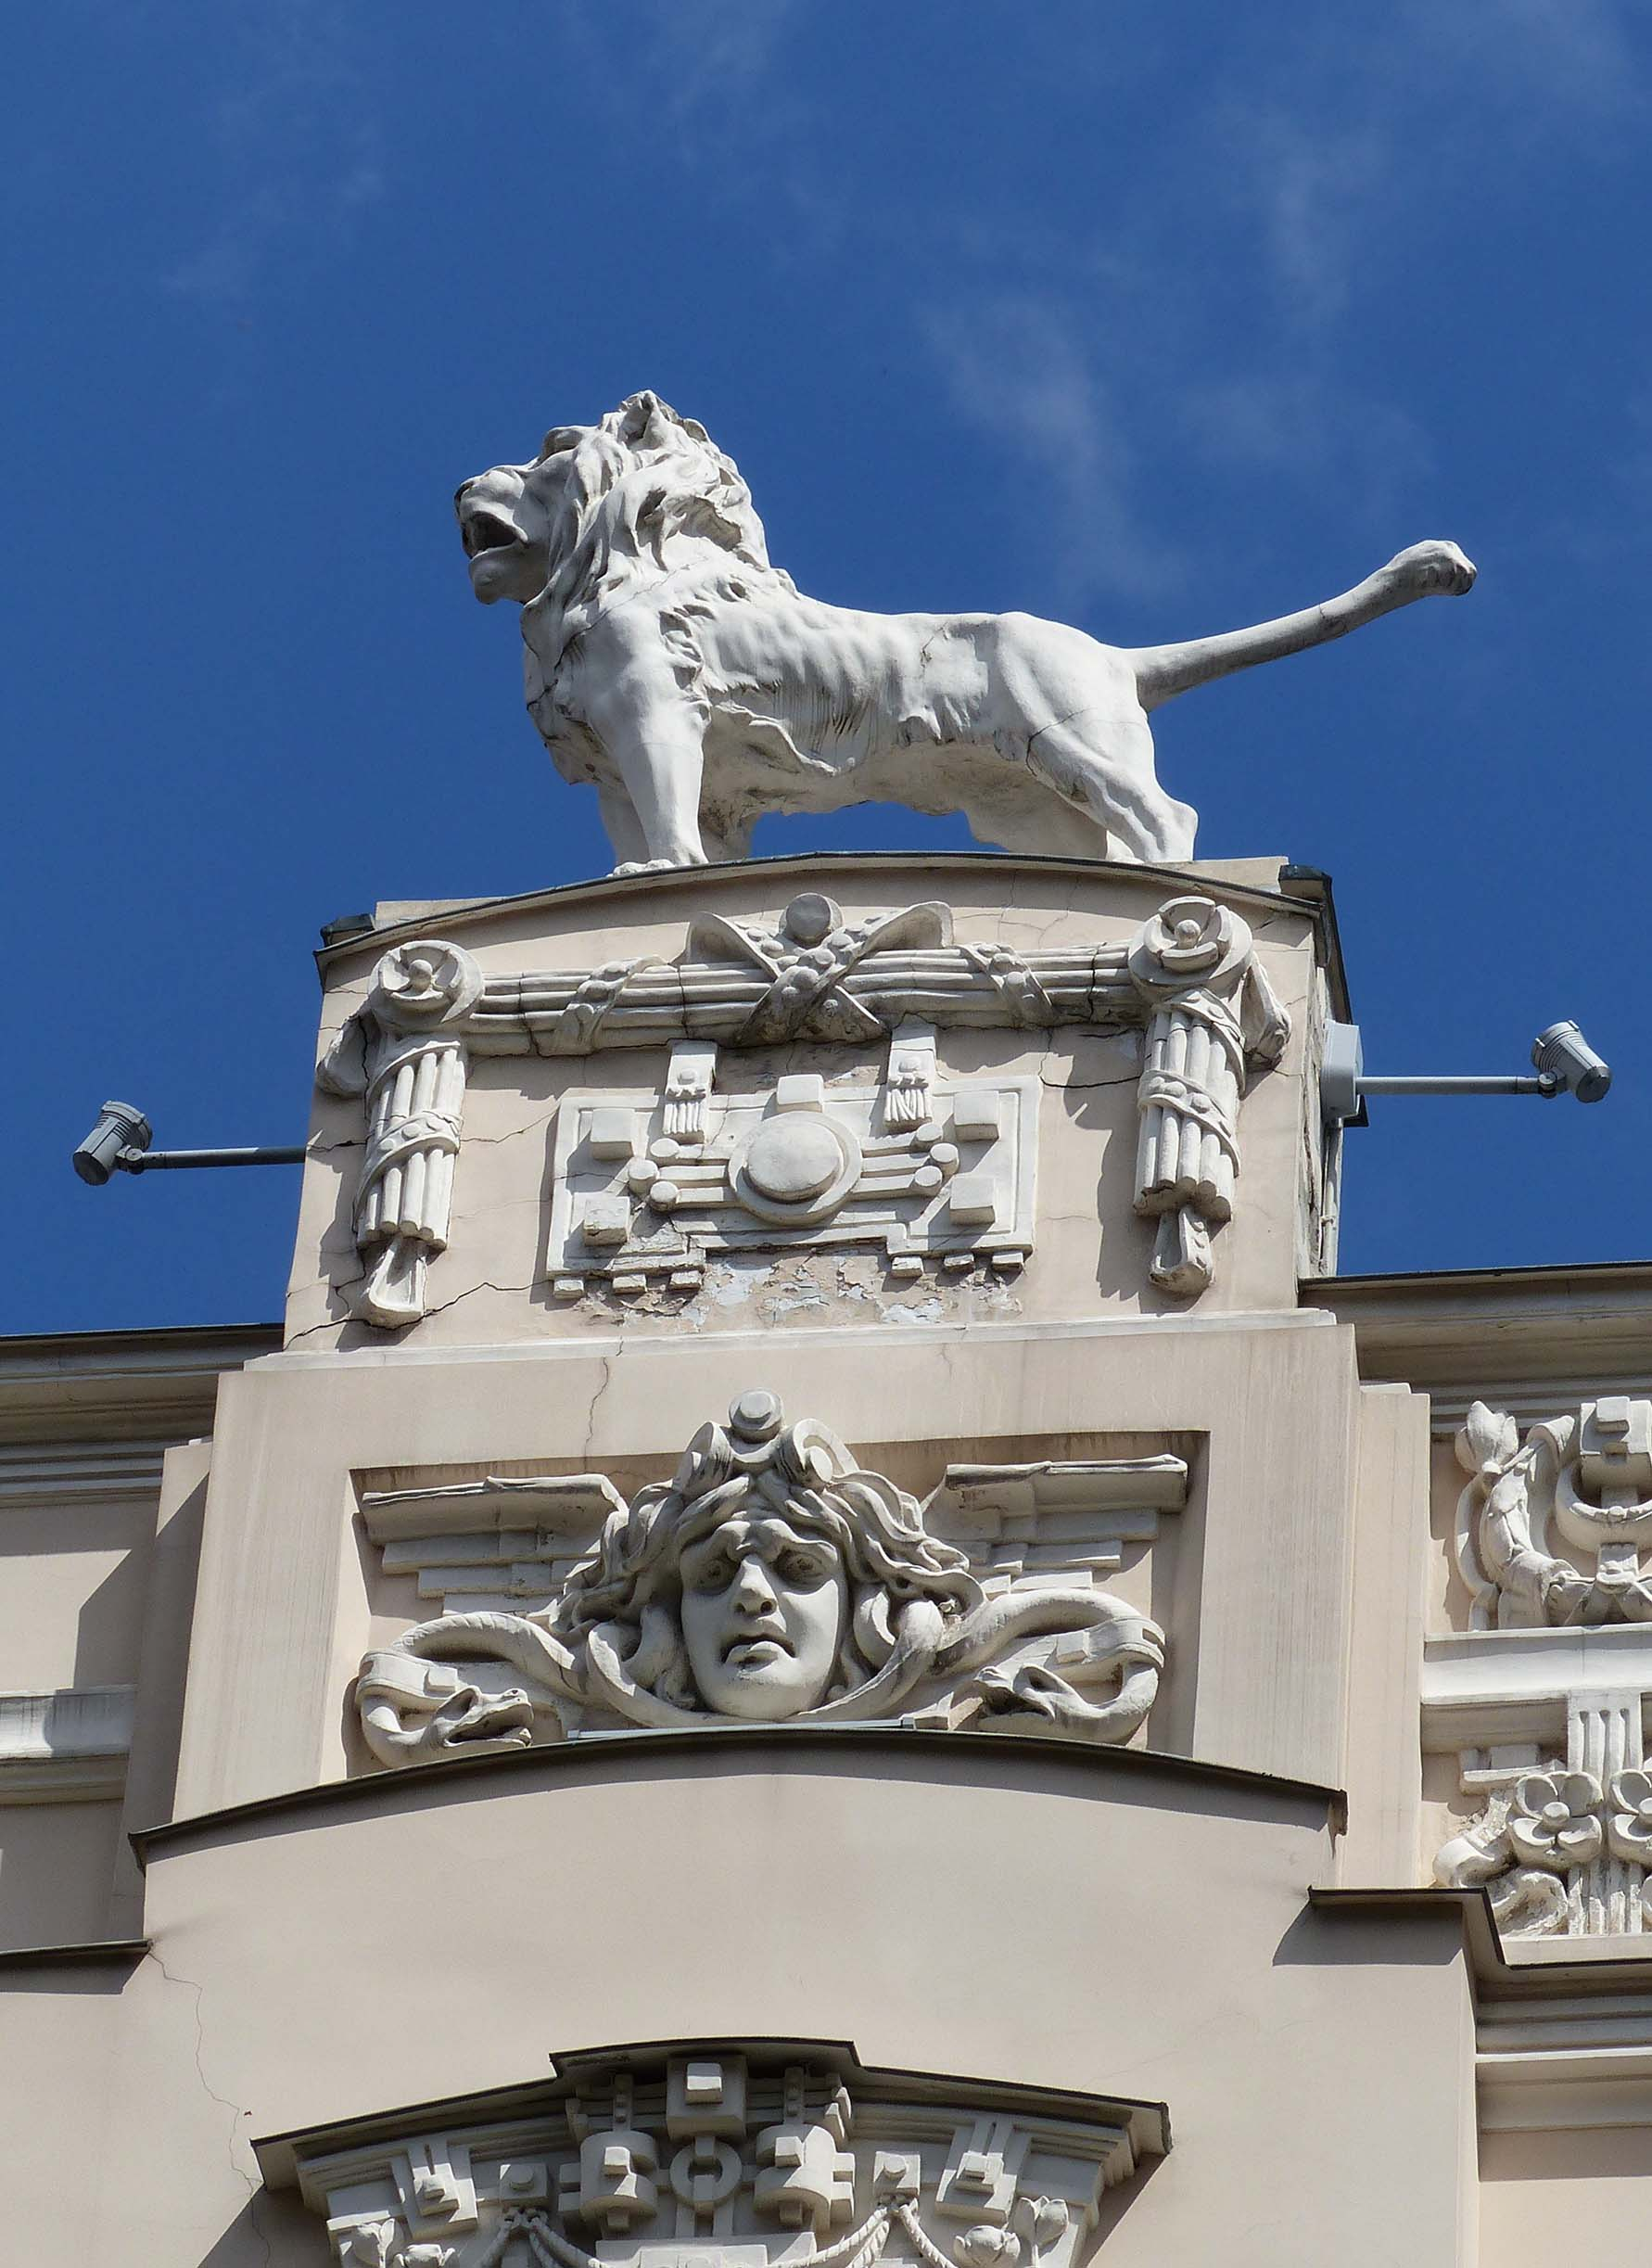 Large carved lion on top of a building